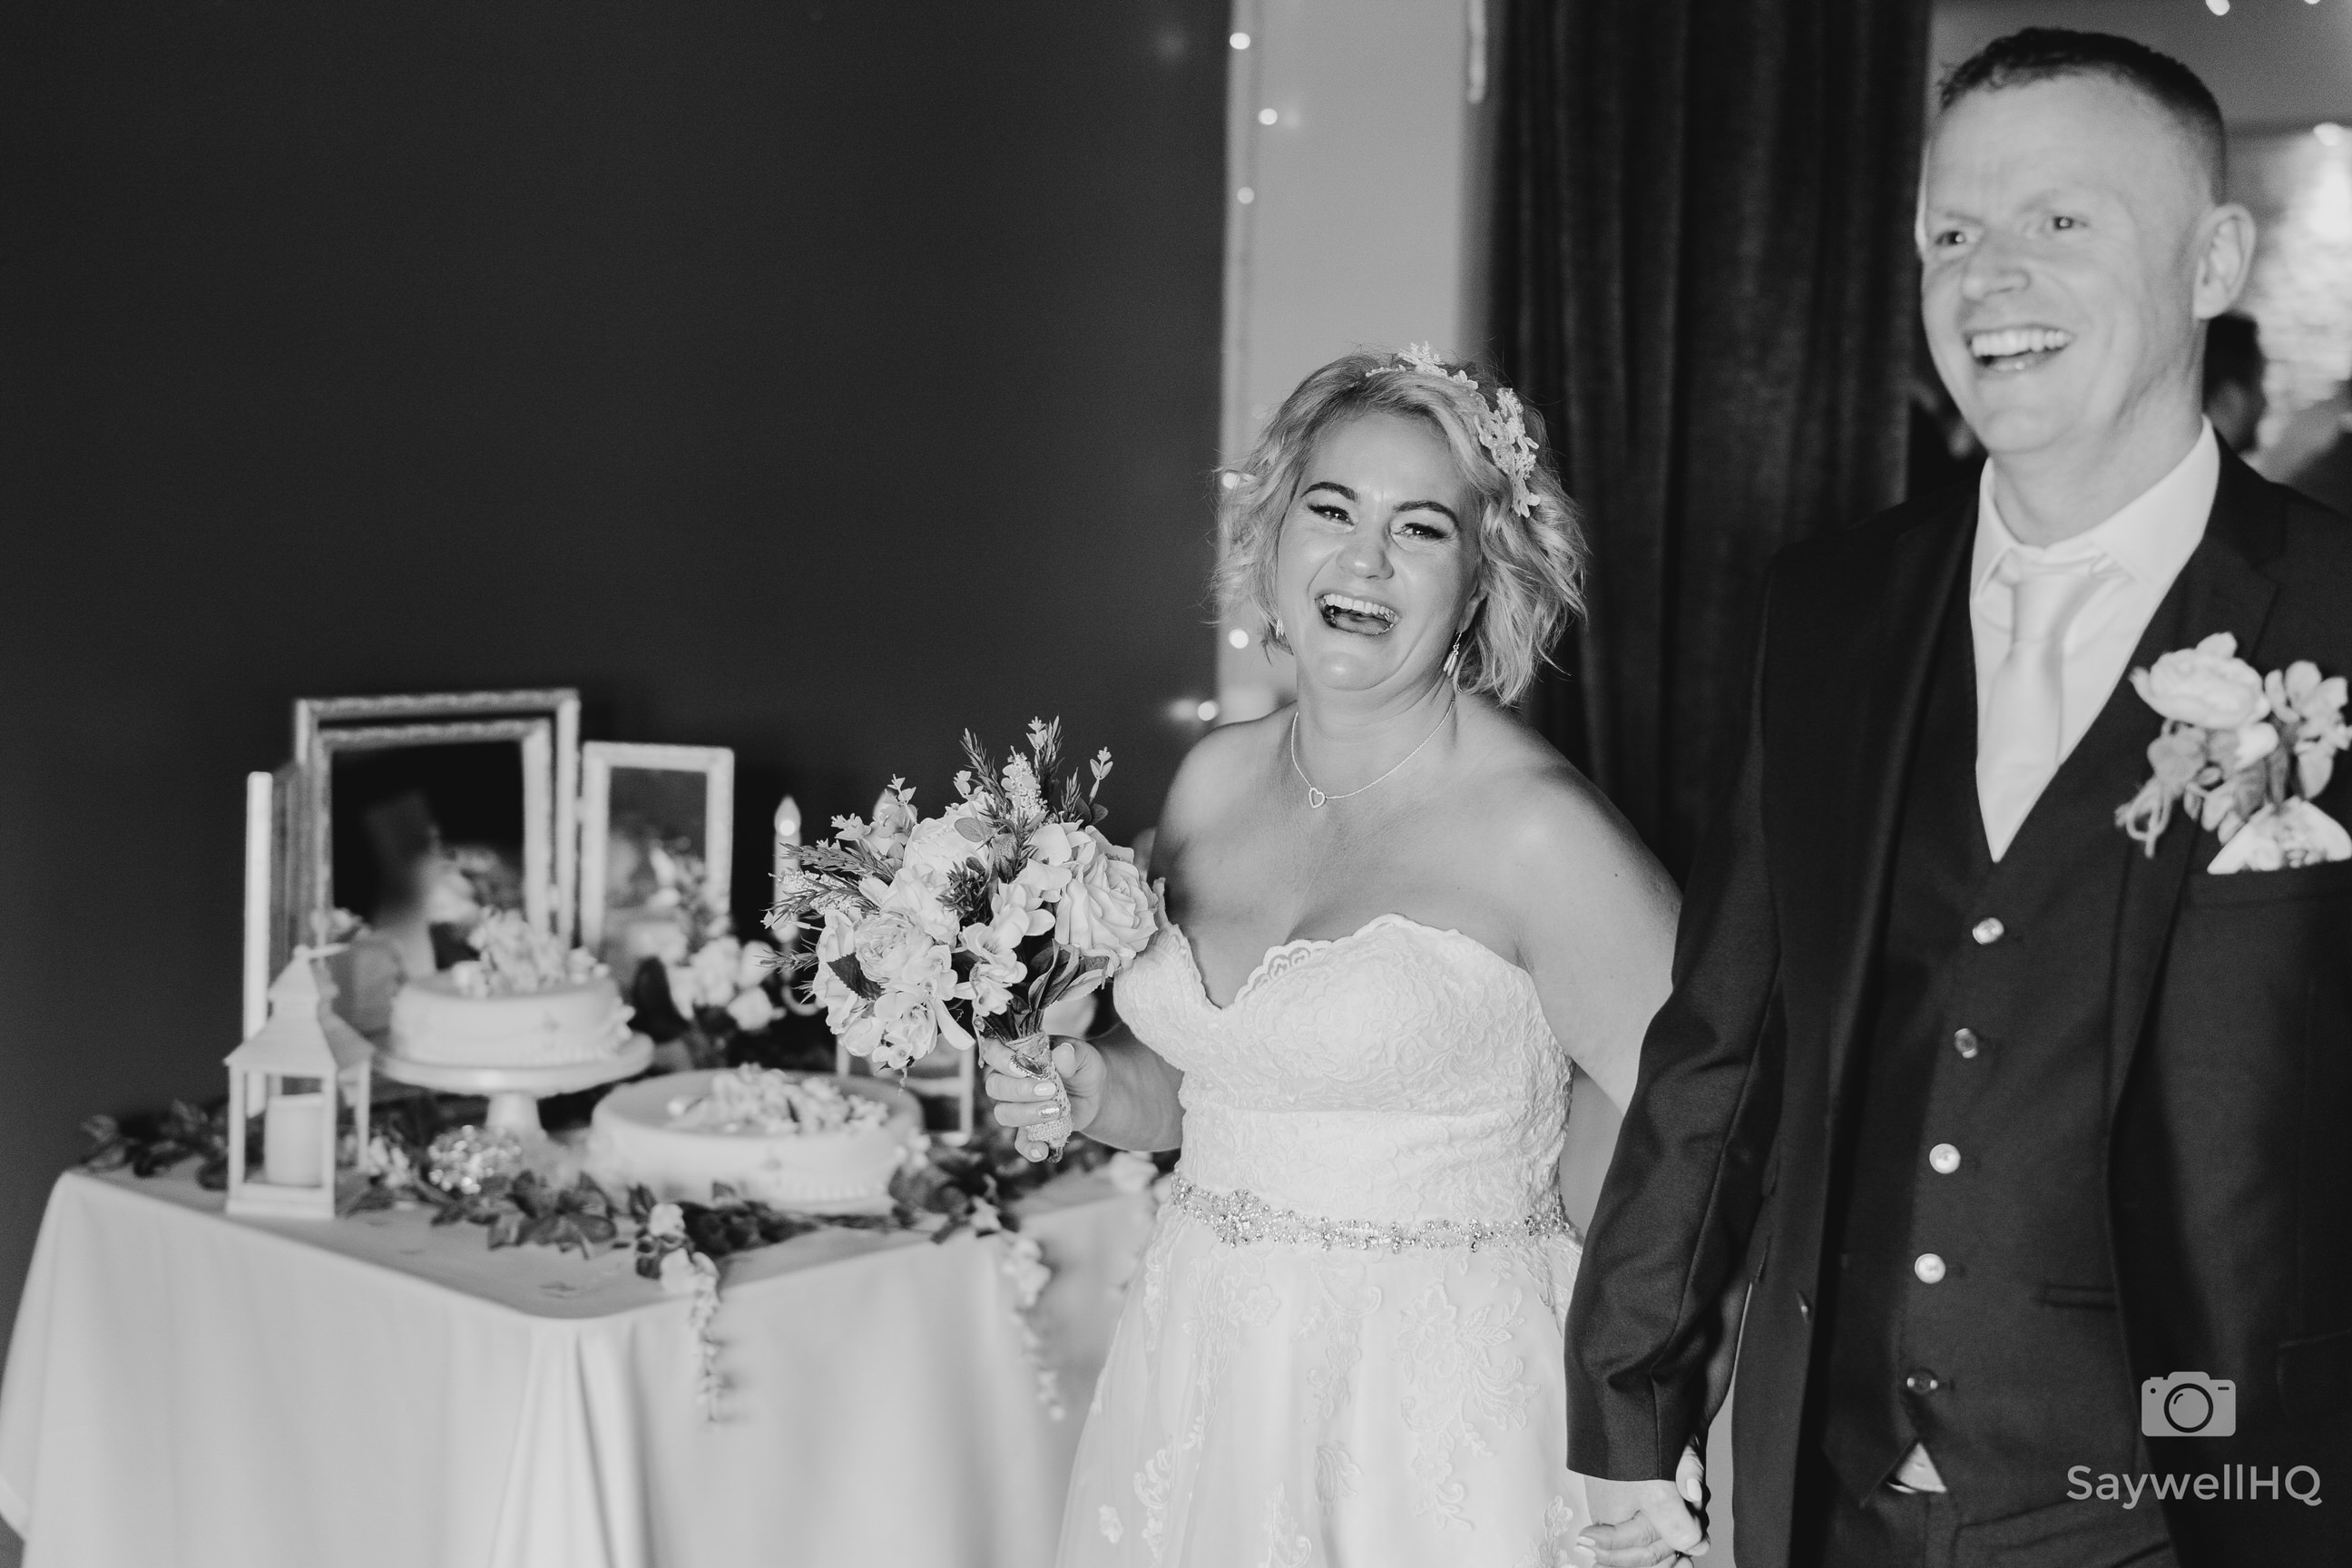 Brewhouse & Kitchen Nottingham Wedding Photography - bride and groom leaving the wedding reception